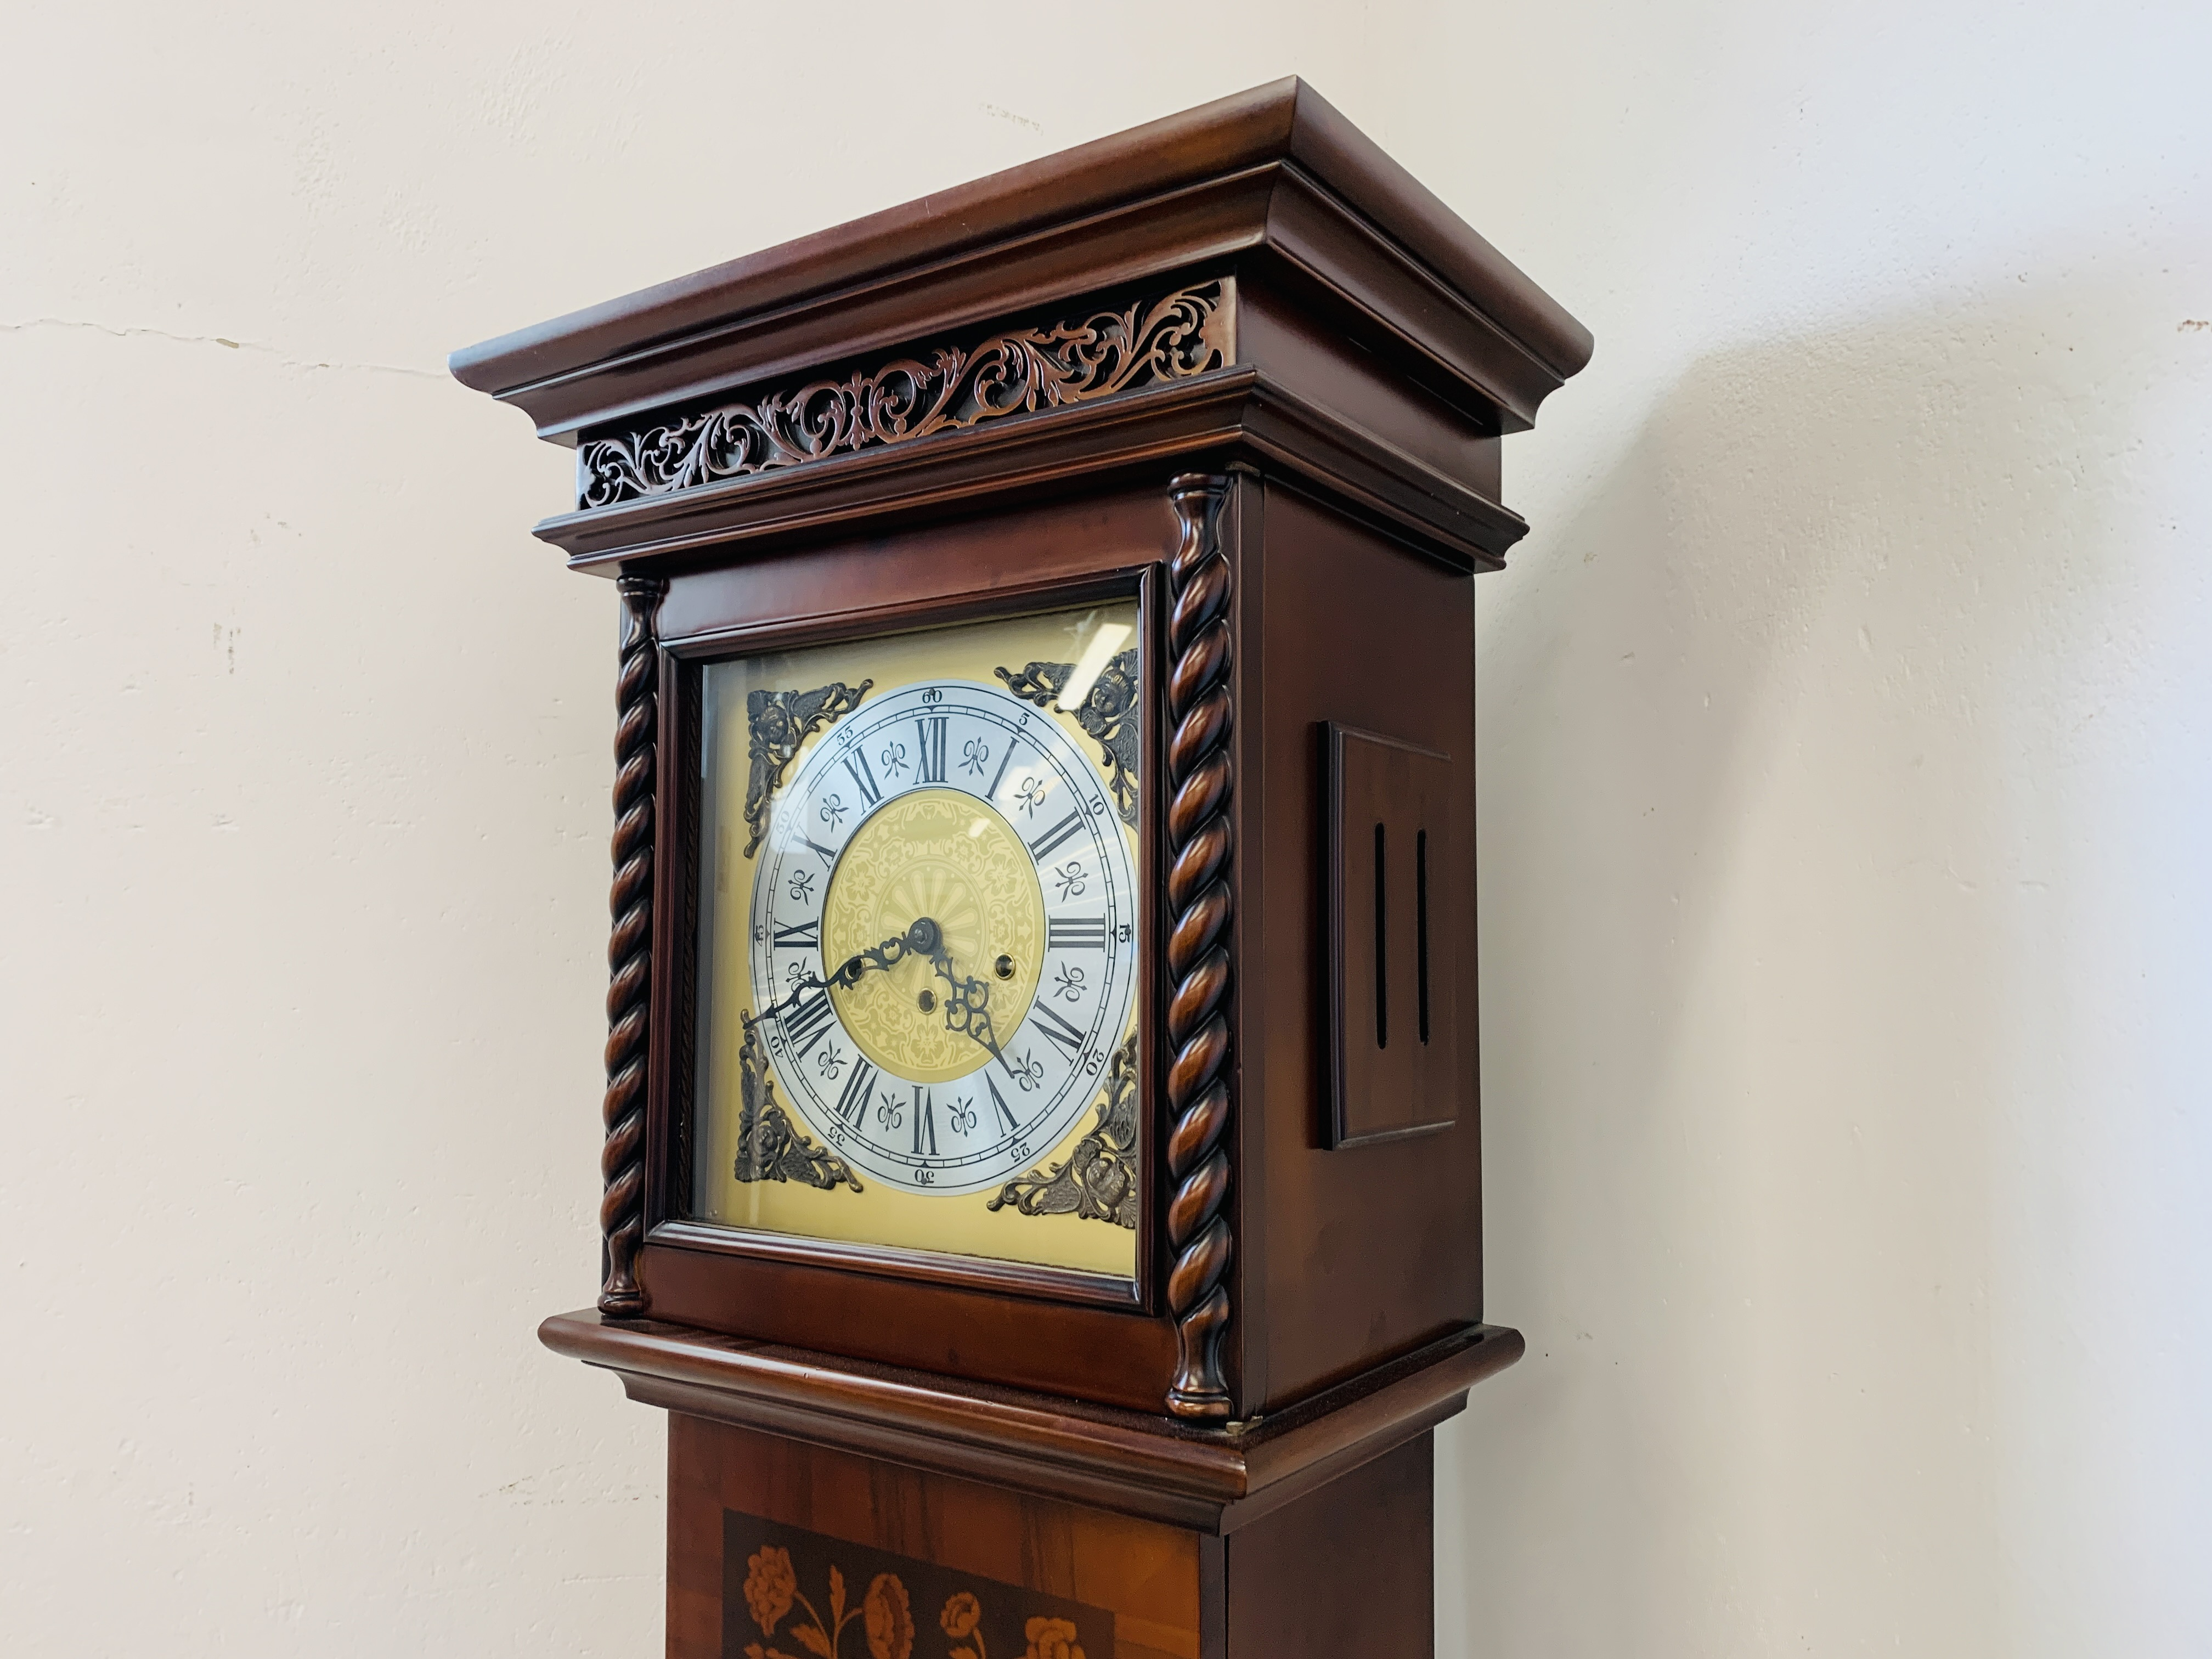 A GOOD QUALITY REPRODUCTION LONG CASE CLOCK - WESTMINSTER CHIME - SOLD AS SEEN - Image 4 of 19